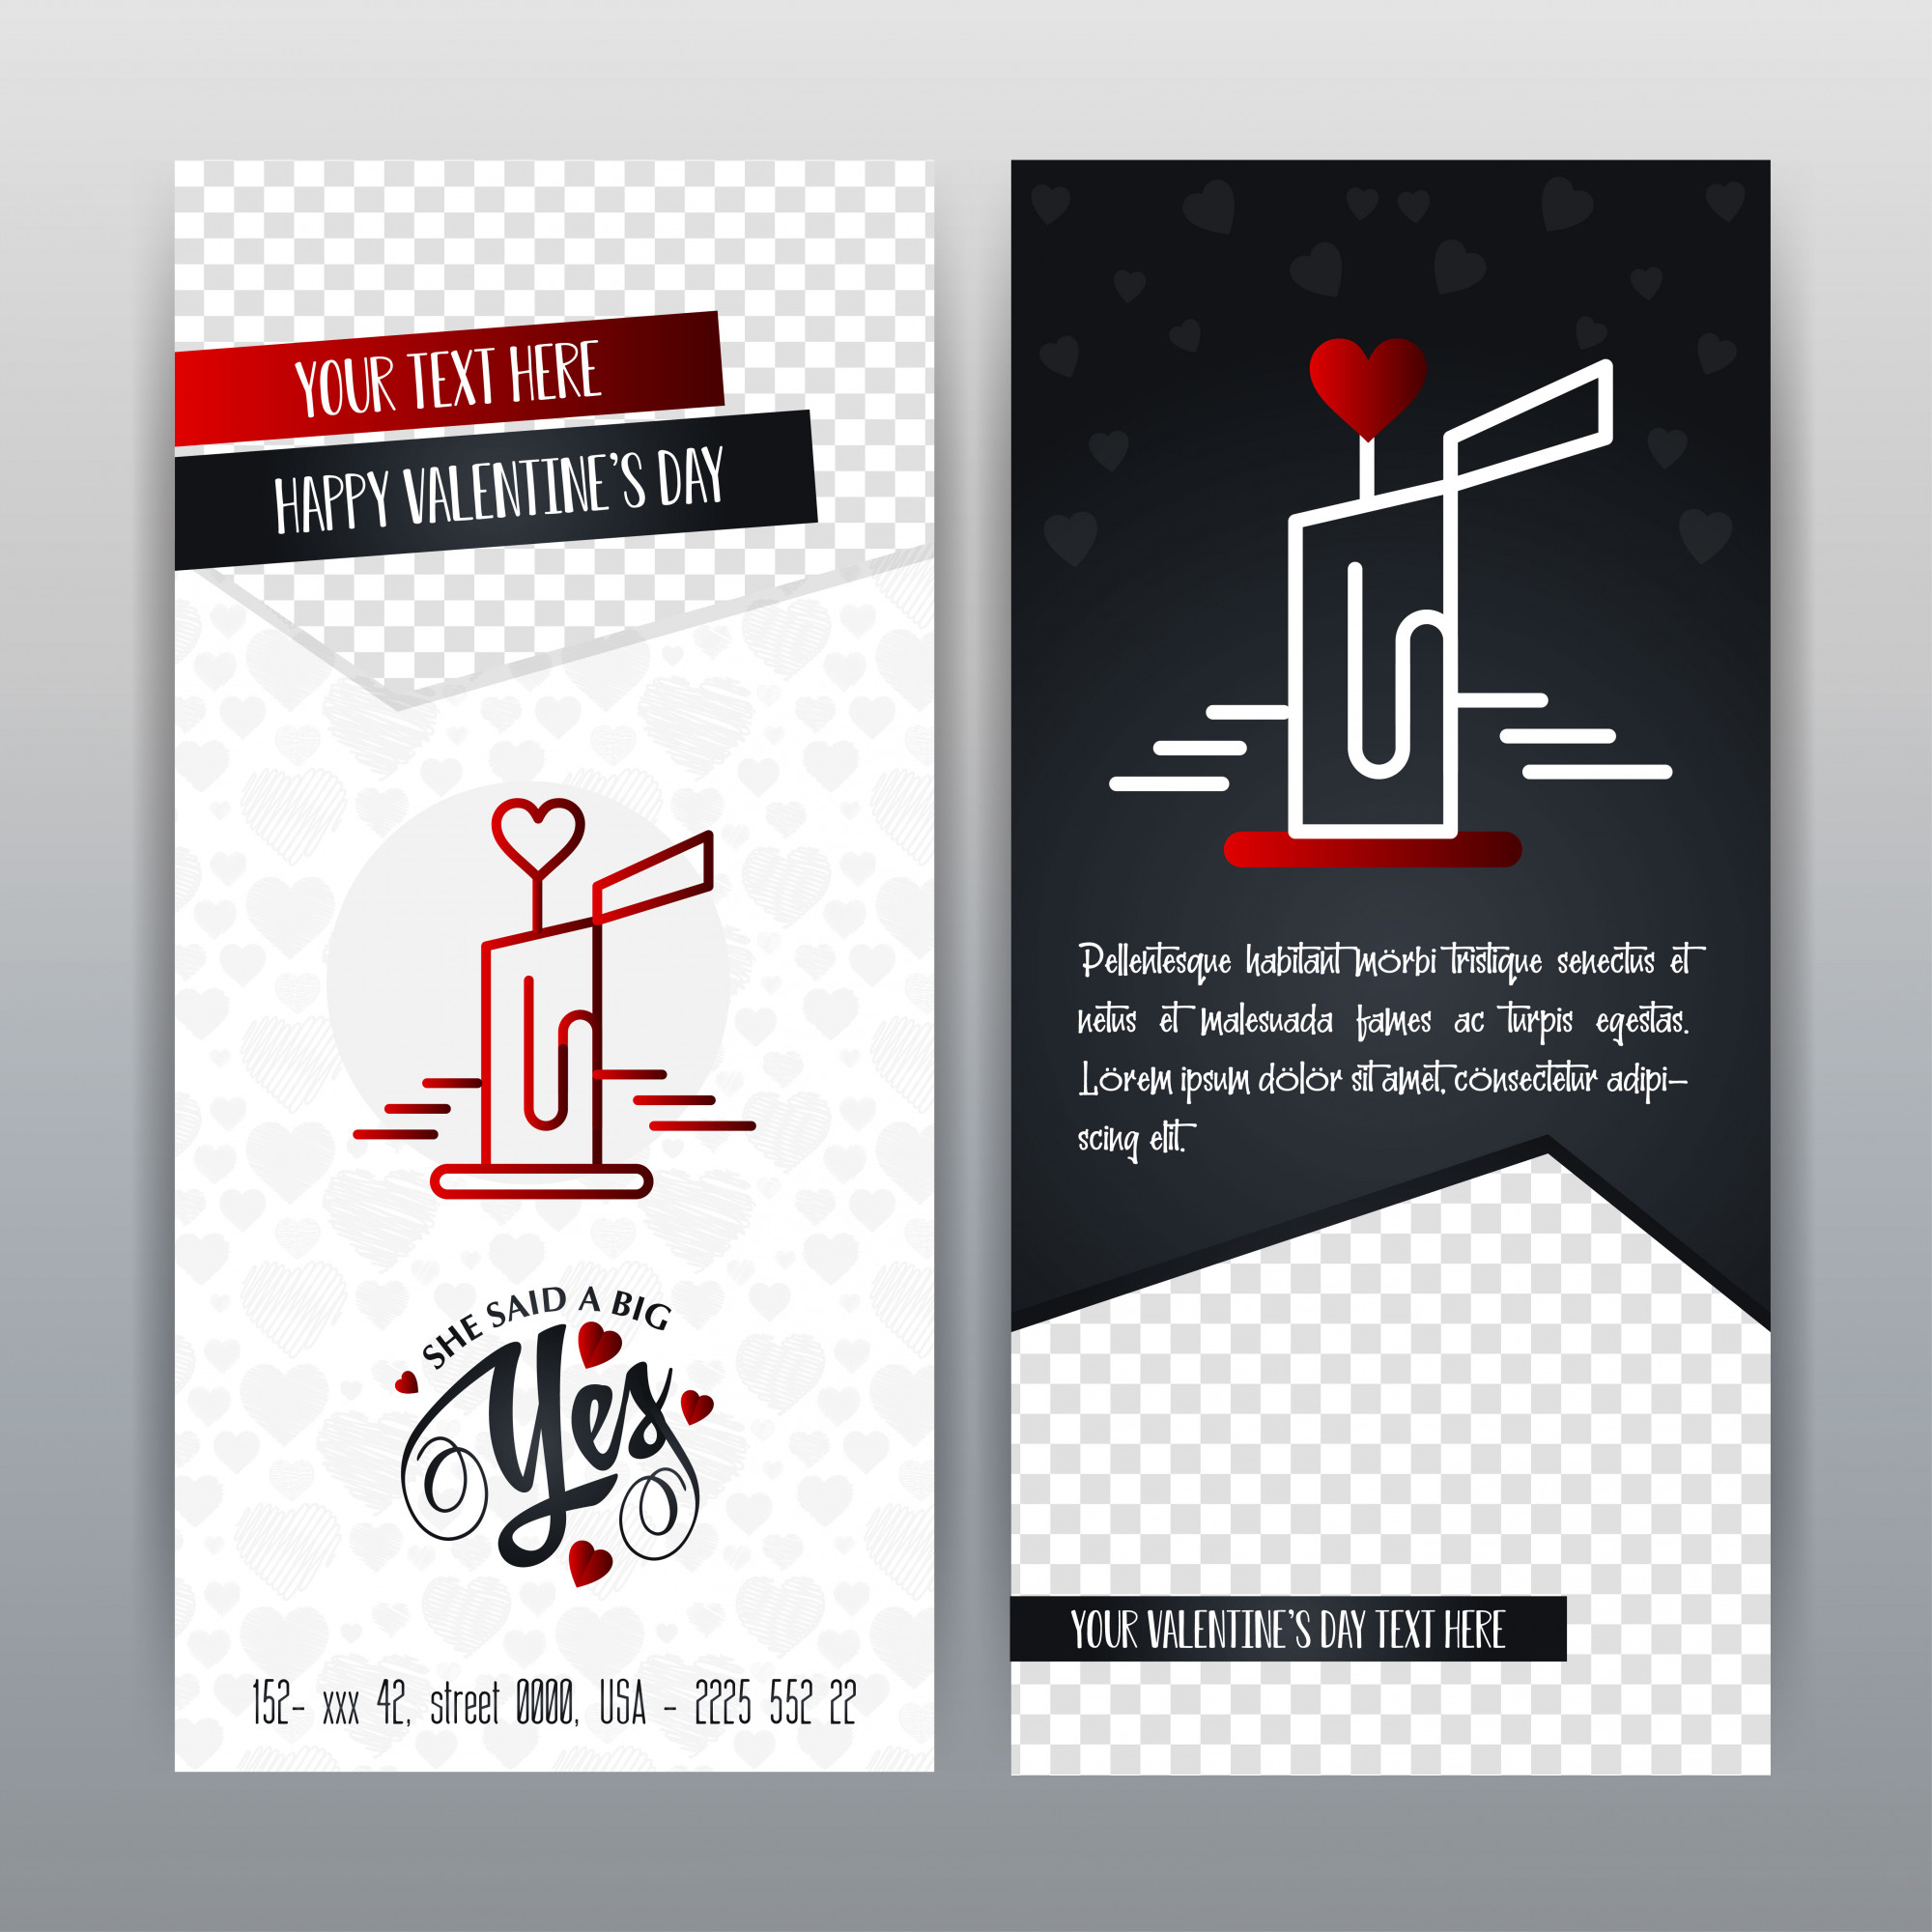 Happy Valentine's Day Red Icon Vertical Banner. Vector illustration